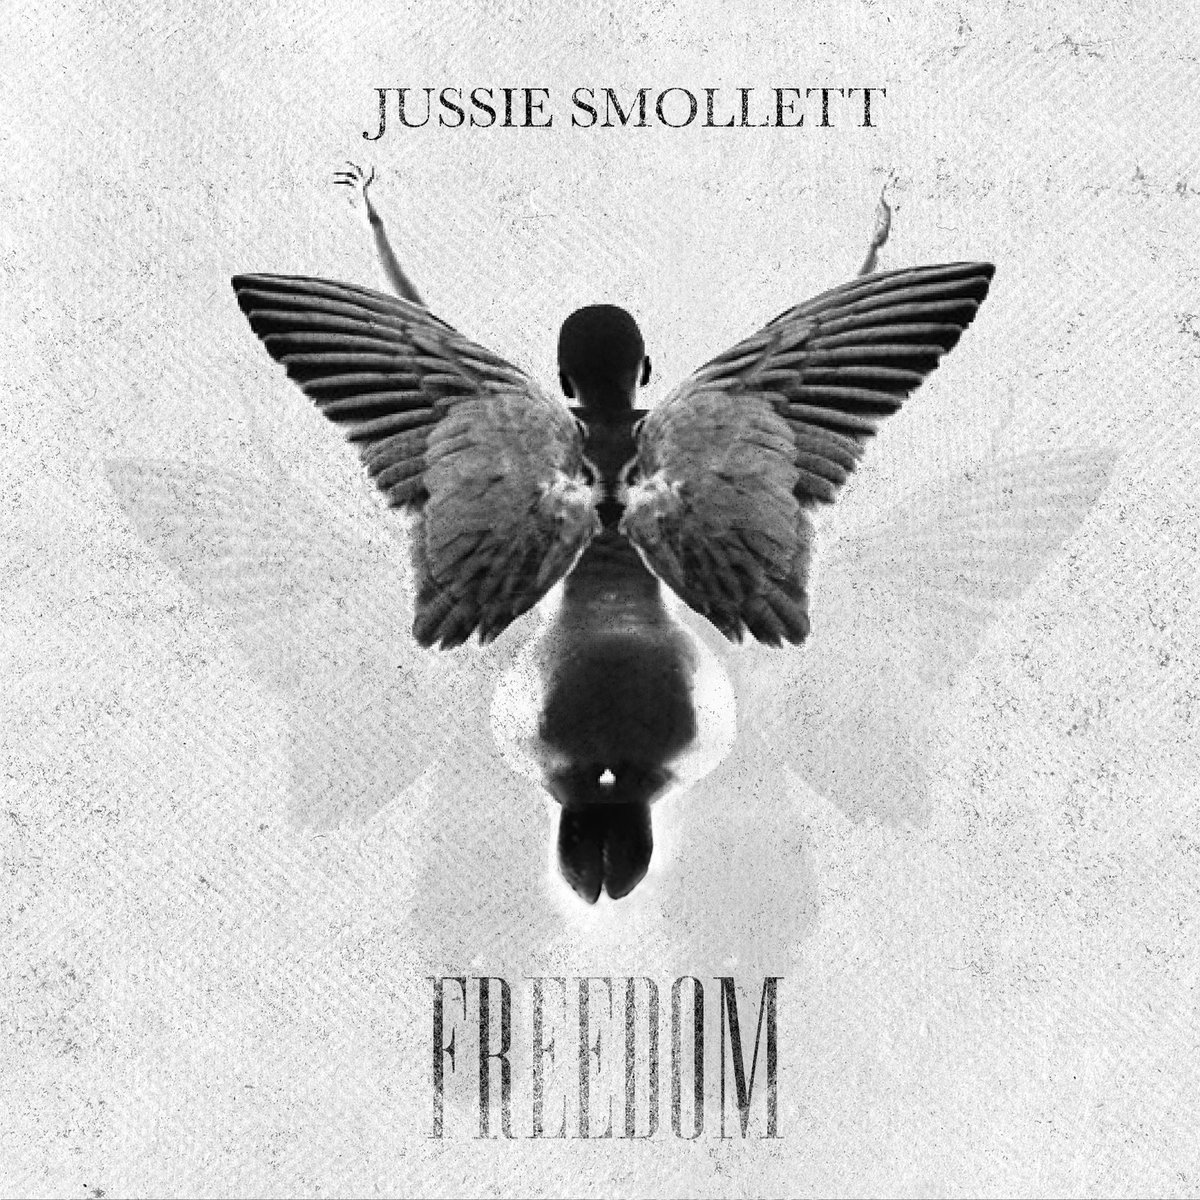 Jussie Smollett Freedom